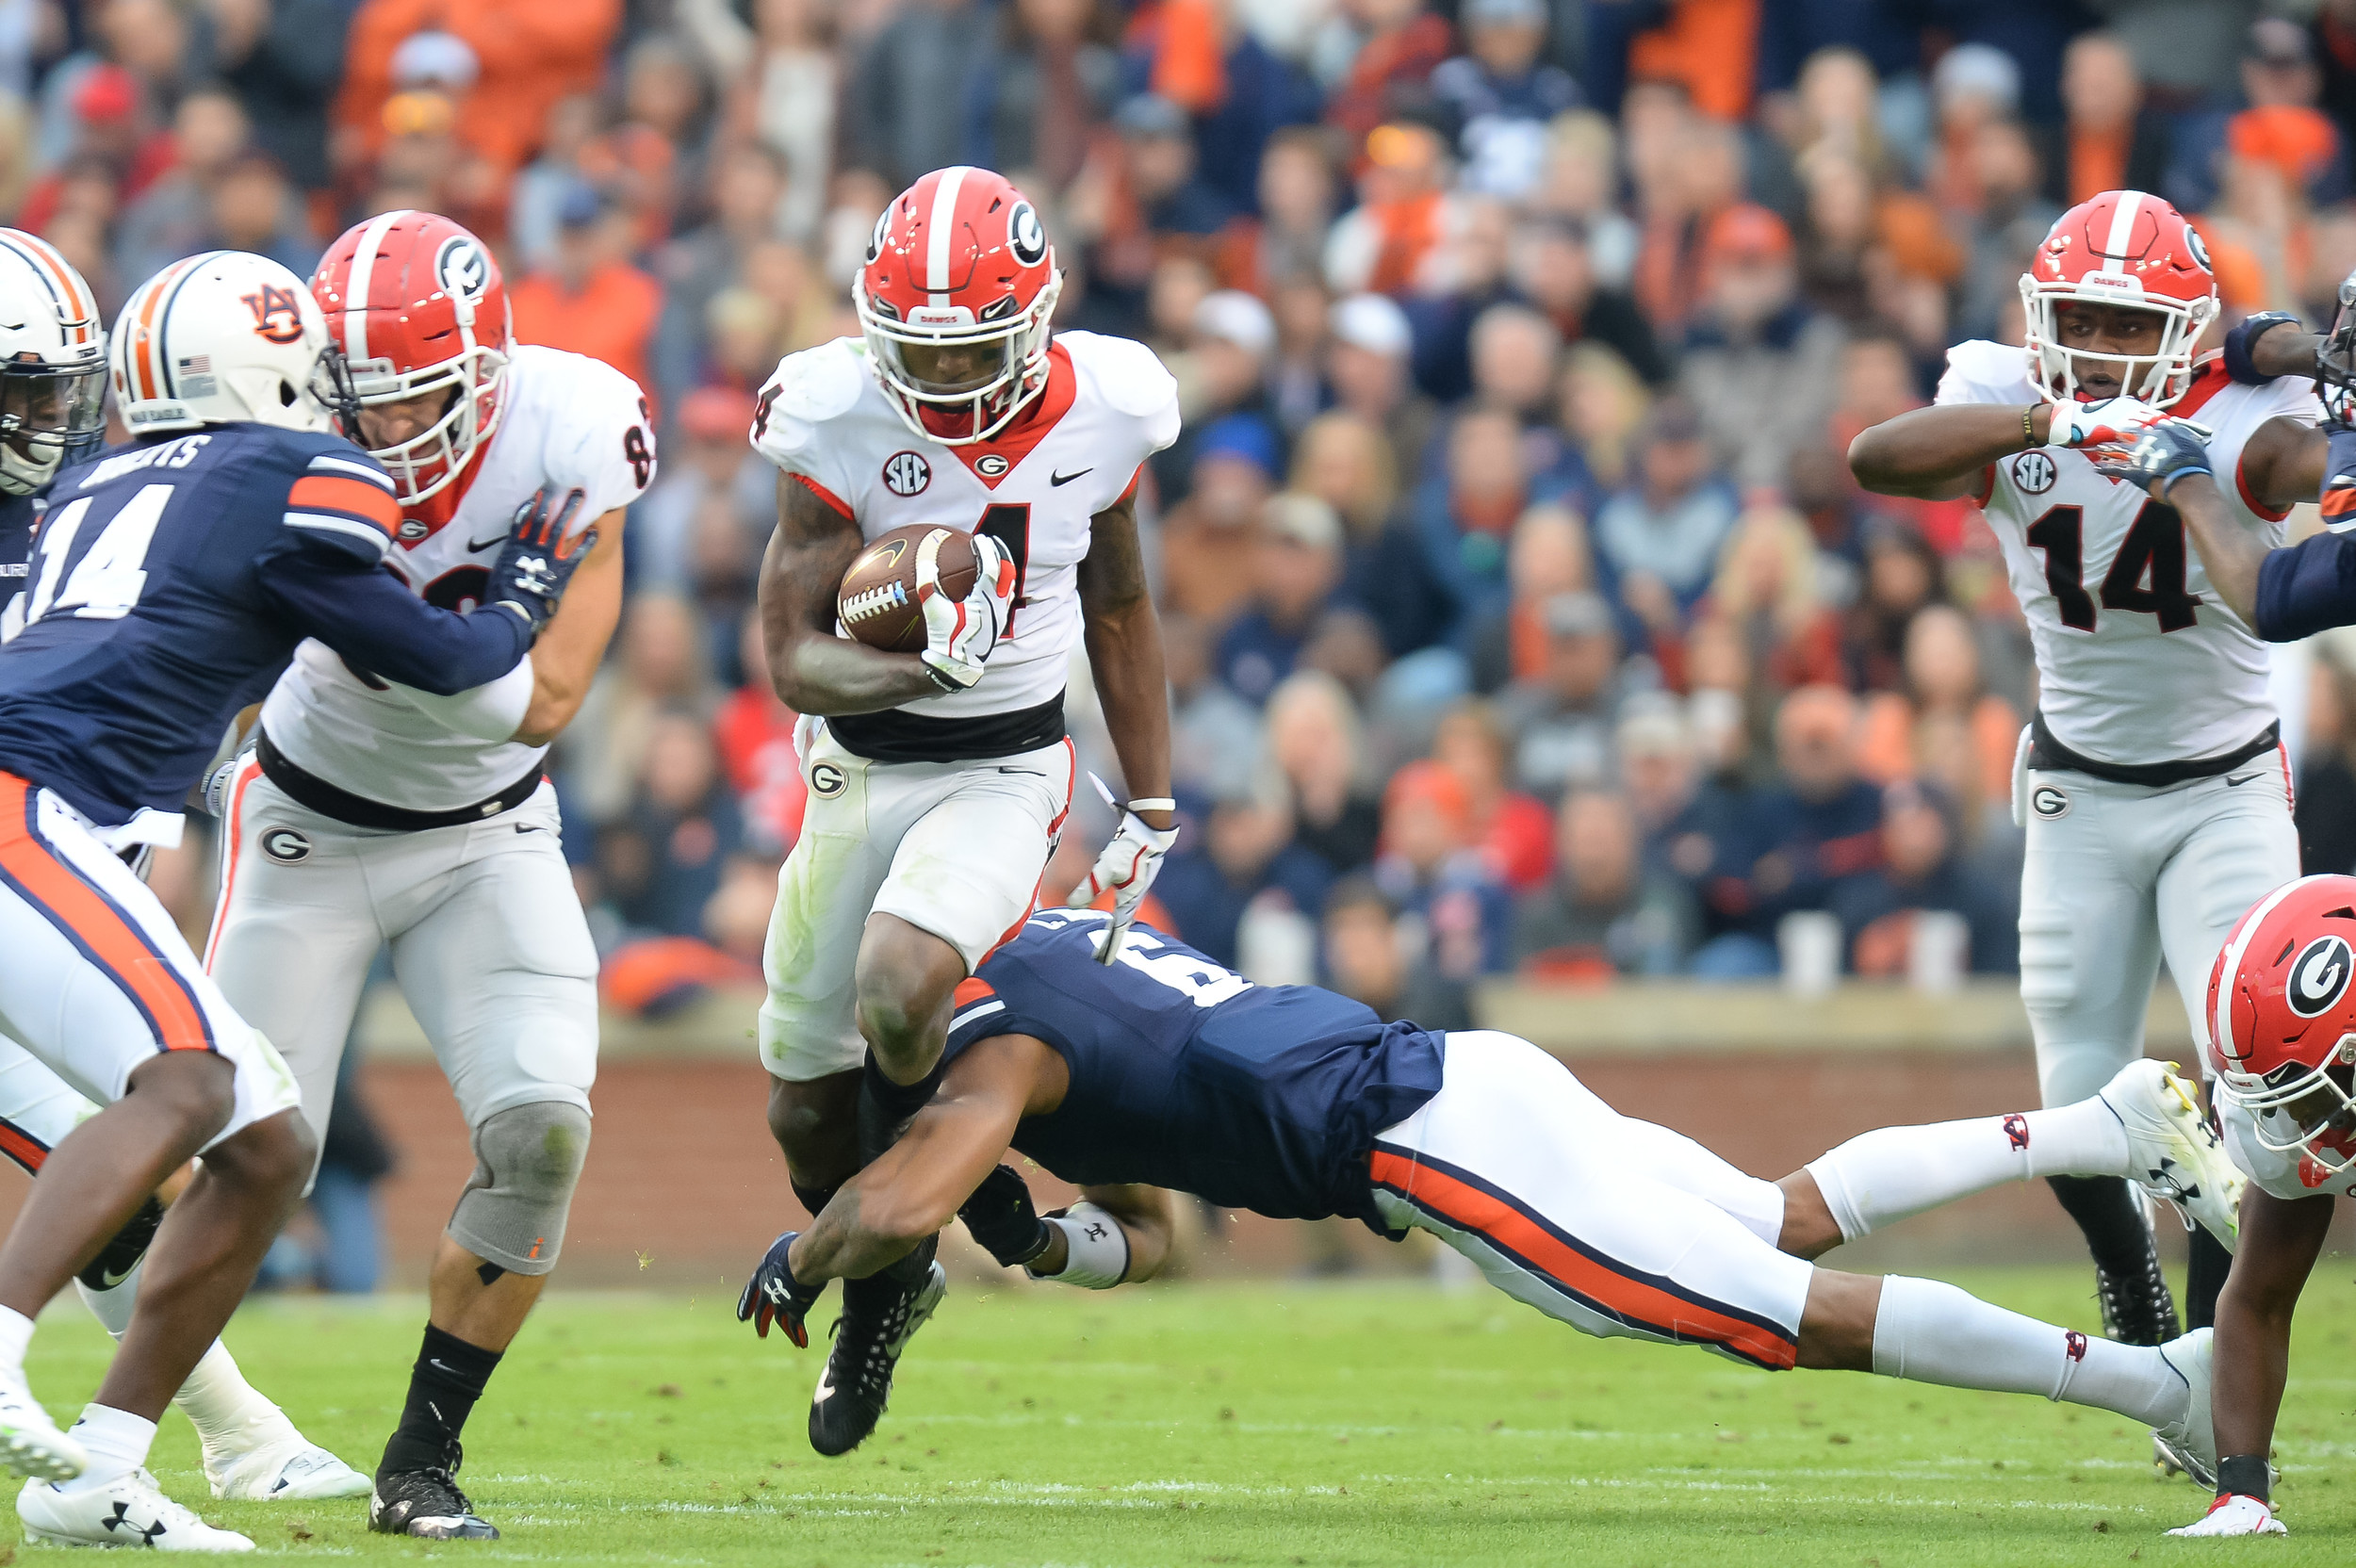 Georgia Bulldogs wide receiver Mecole Hardman (4) is tackled by Auburn Tigers defensive back Carlton Davis (6) during the first half of Saturday's game, at Jordan-Hare Stadium.